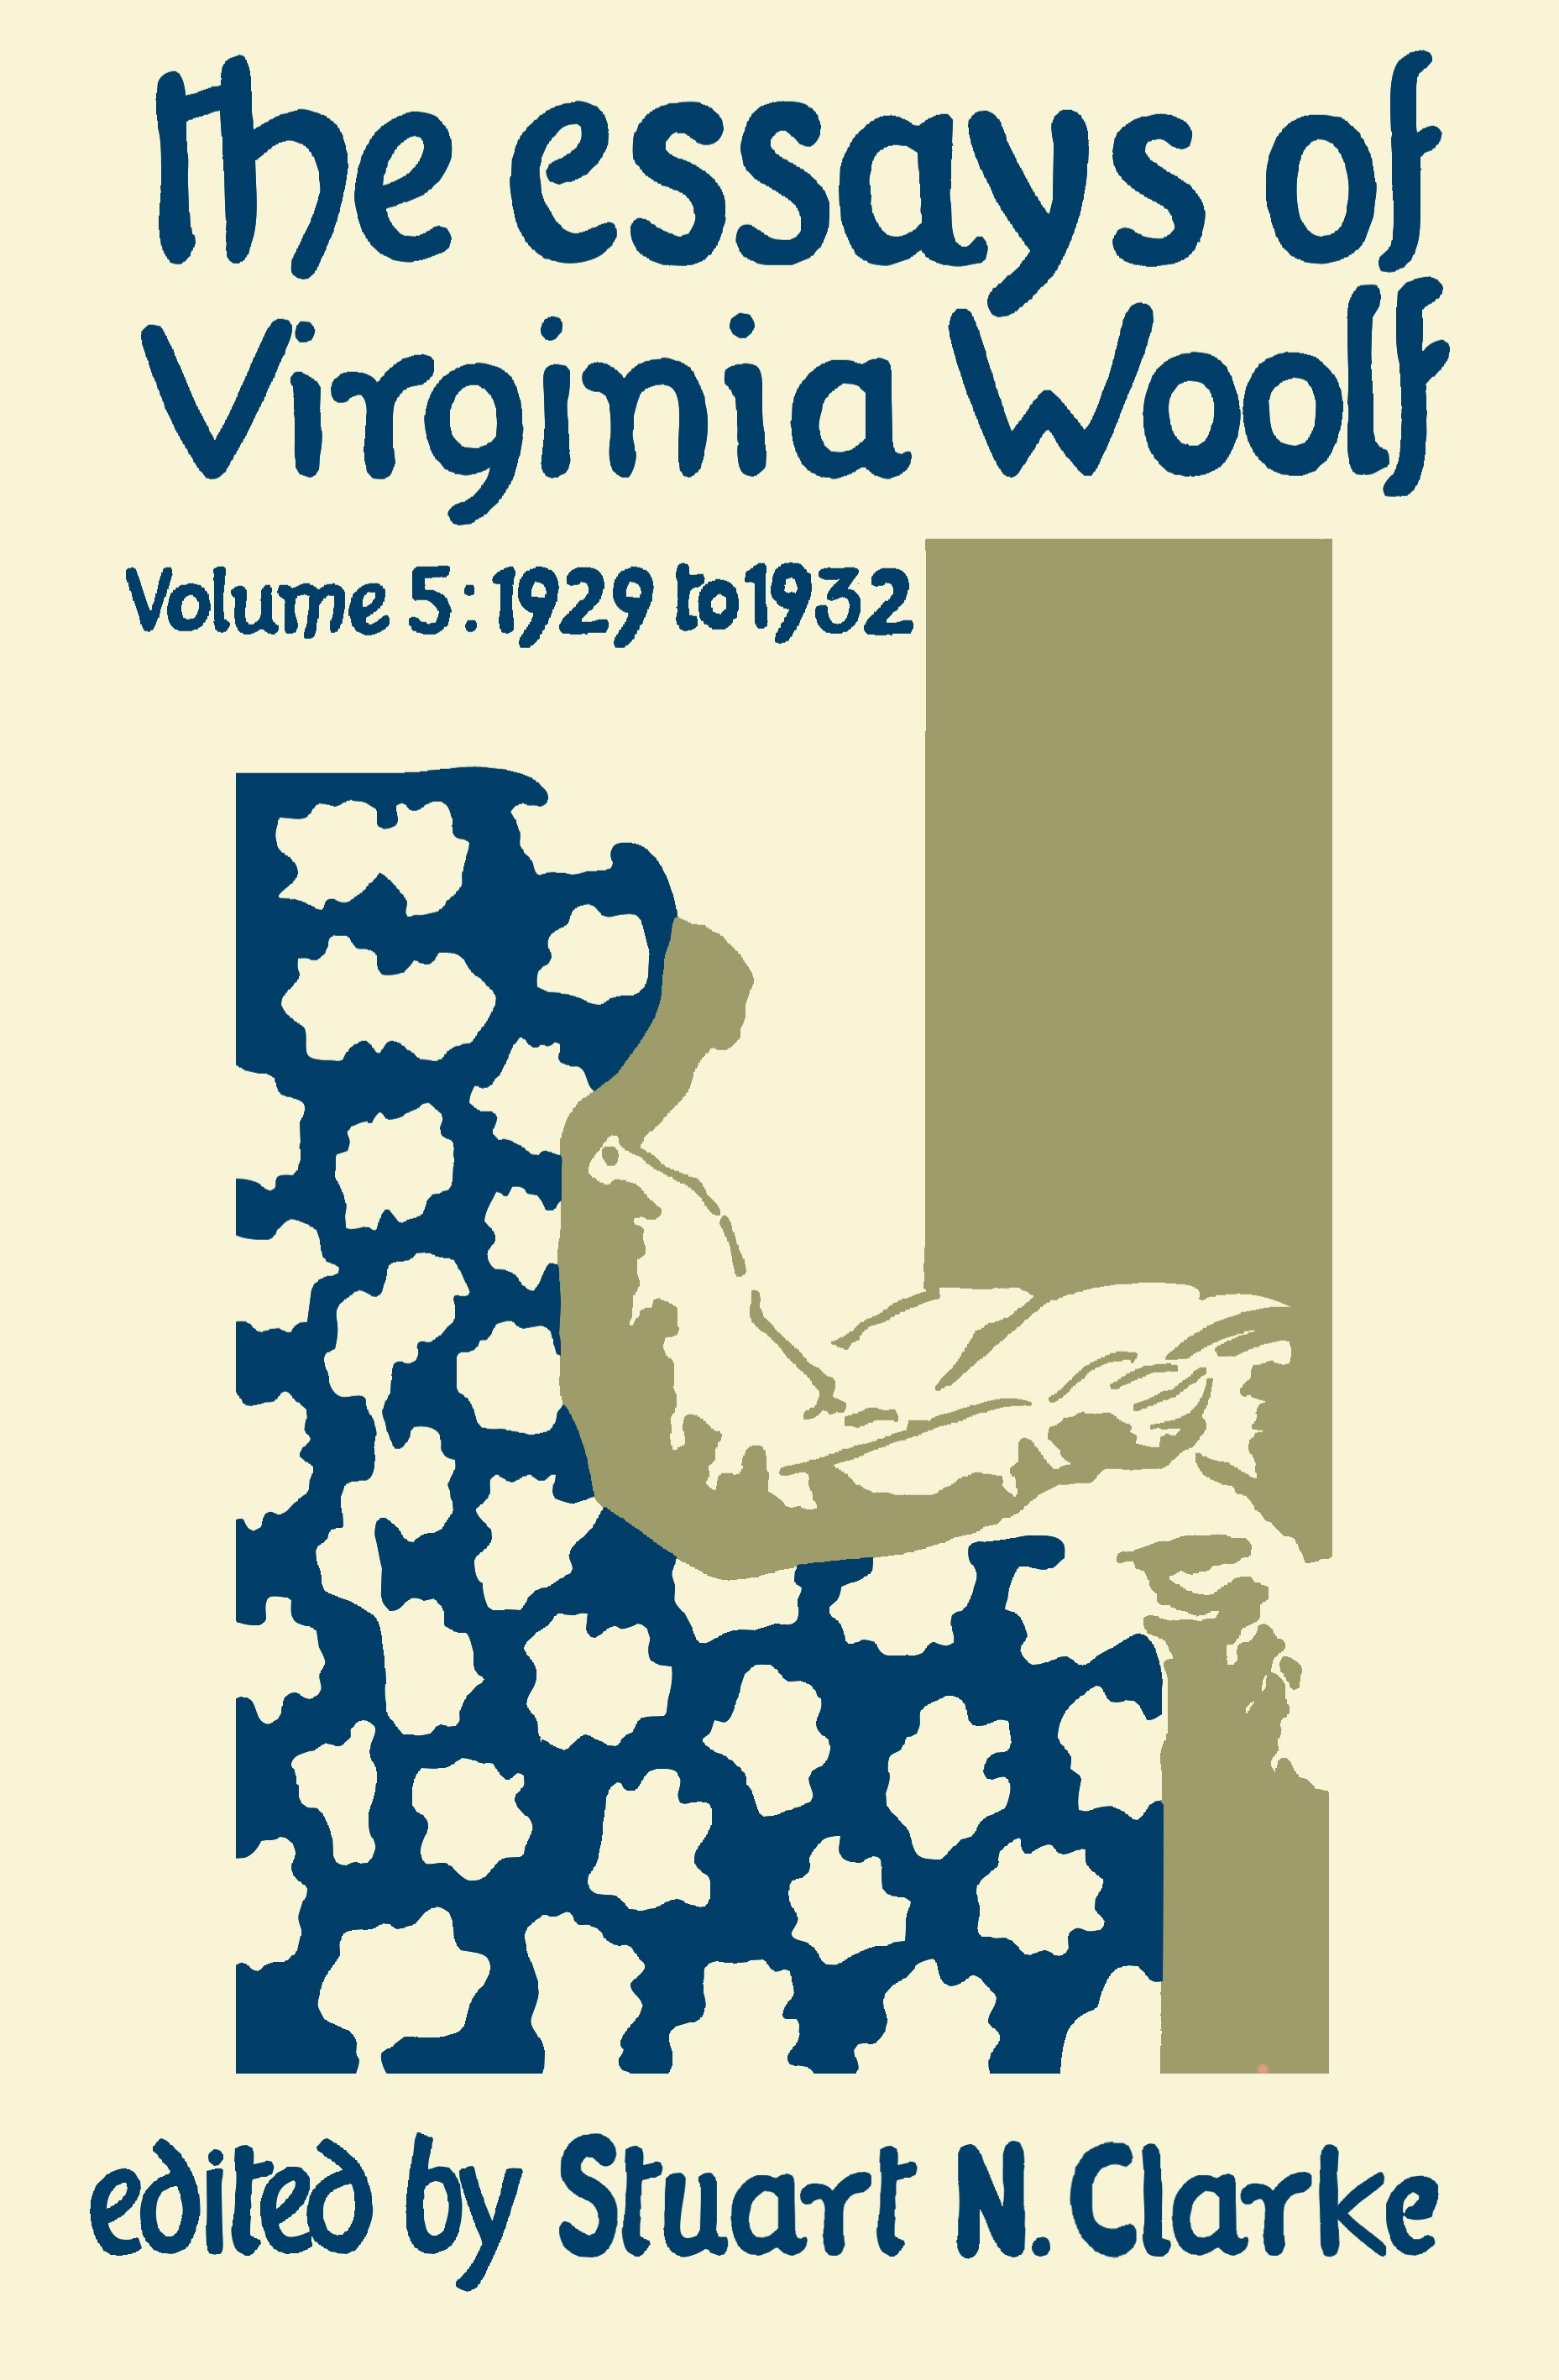 virginia woolf essay themes To characterize my own personal writing style, i need to reflect on my education background and how those instances shaped my writing my upbringing, unlike that of virginia woolf, was in a nurturing and secure home where i had room to freely think and grow woolf was brought up in a strict victorian setting with [.